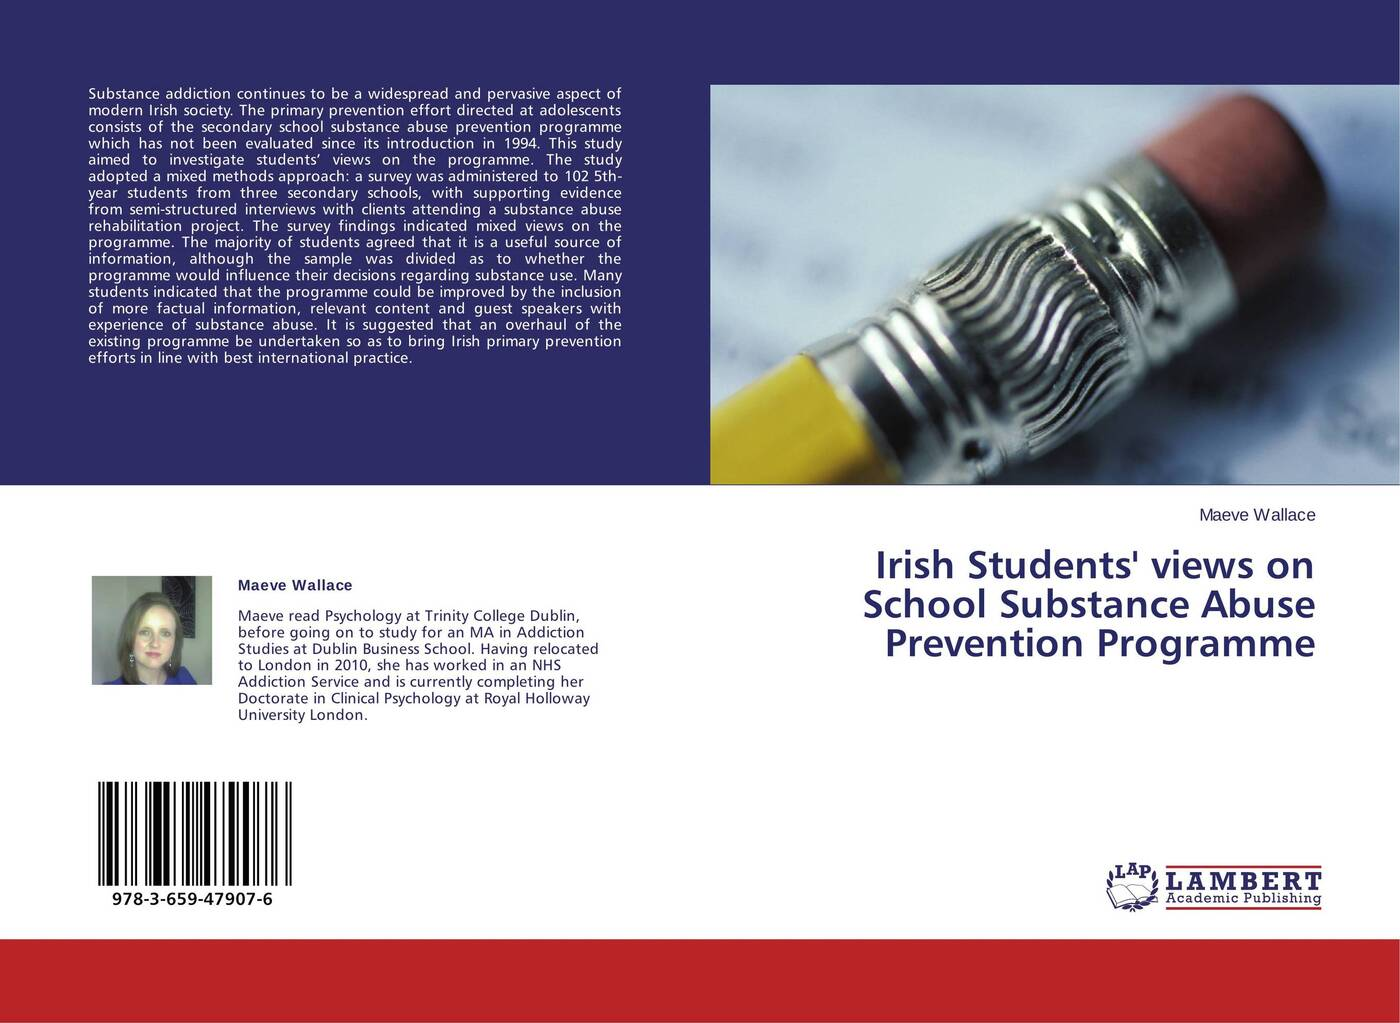 Maeve Wallace Irish Students' views on School Substance Abuse Prevention Programme maeve wallace irish students views on school substance abuse prevention programme